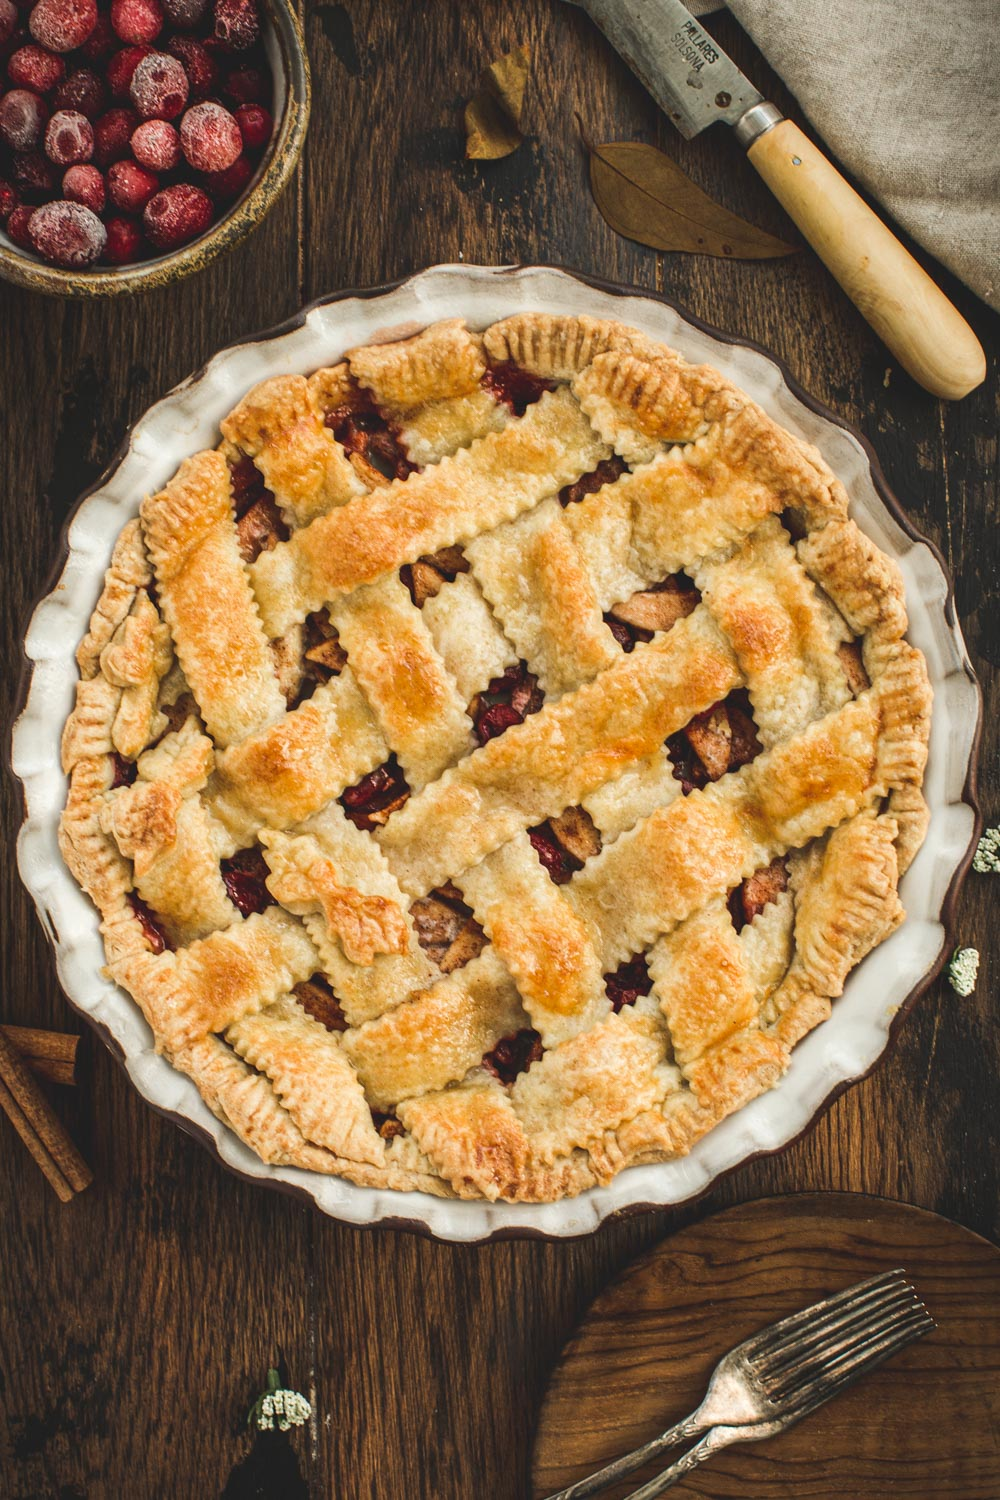 Apple and Cranberry Pie with a lattice crust in a white pie dish sitting on a wooden table.